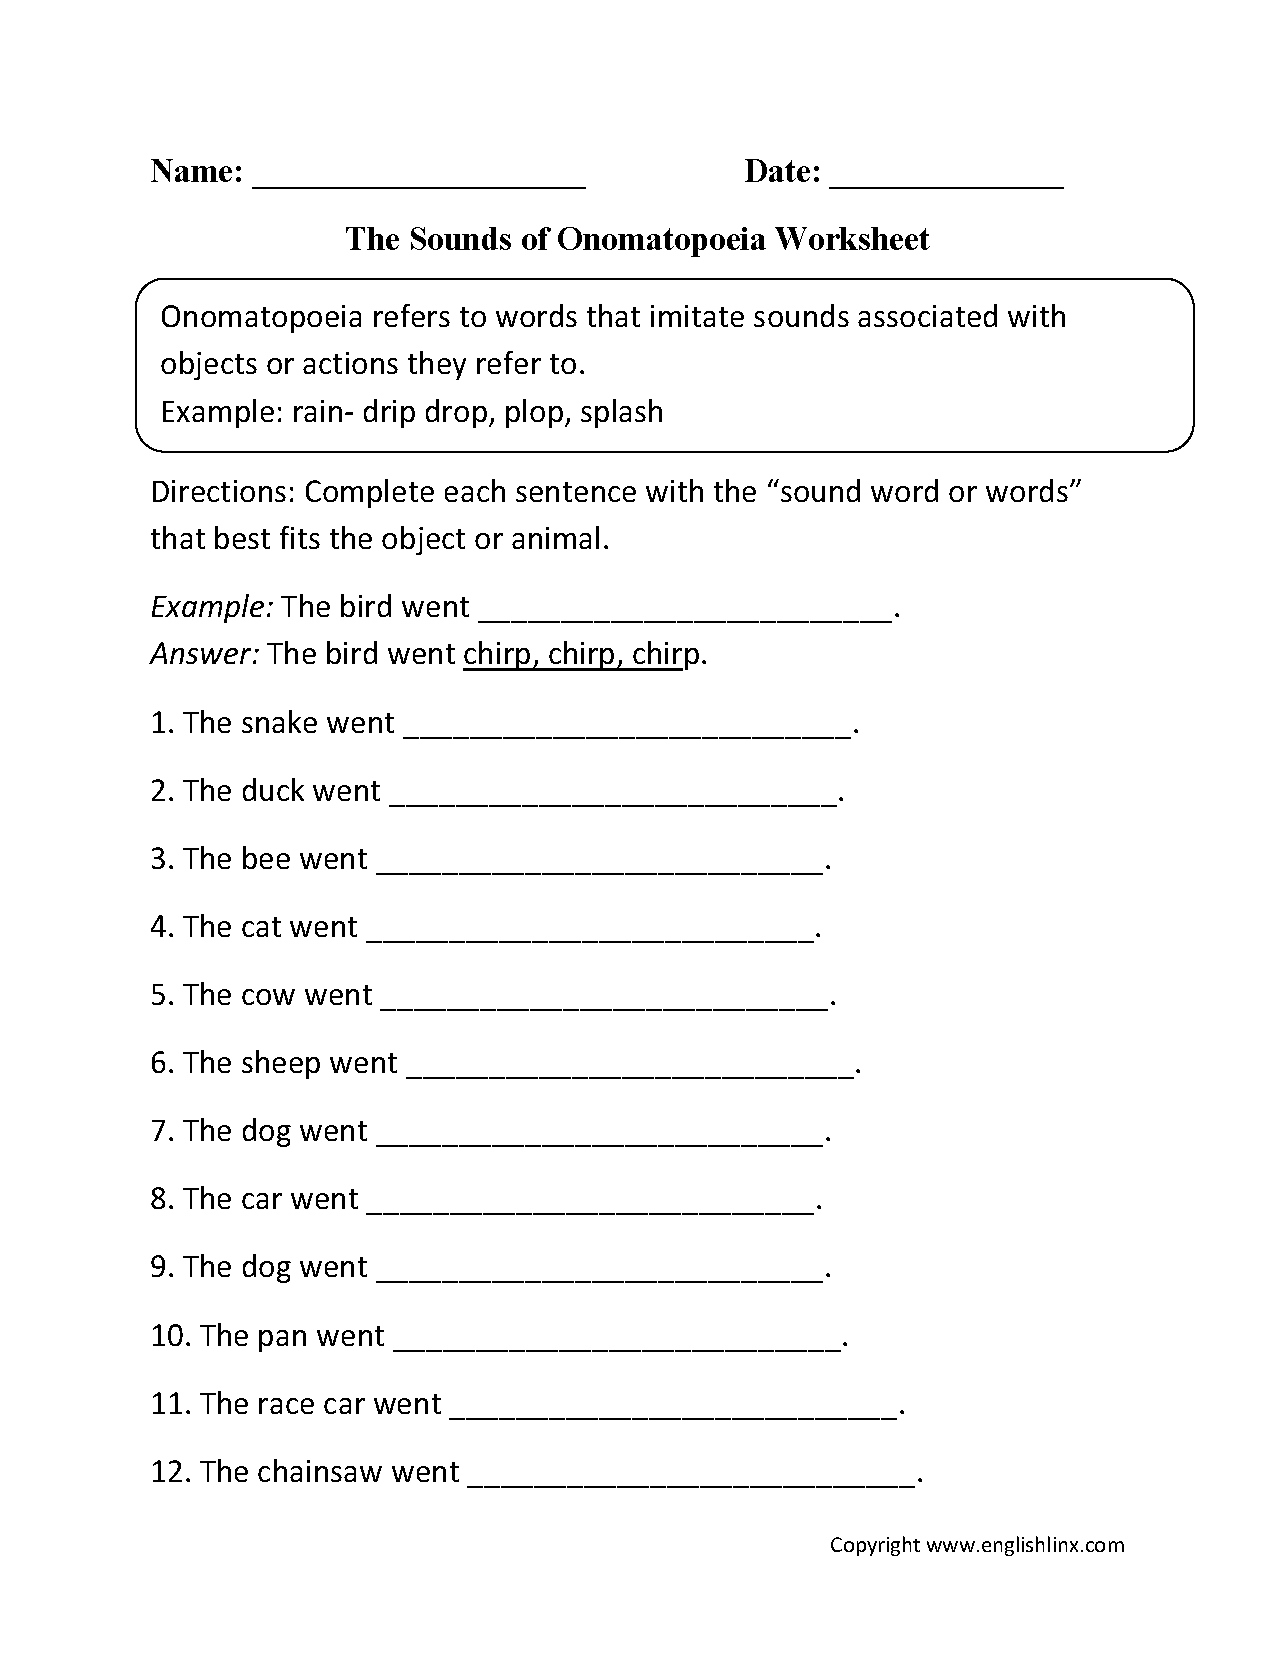 Aldiablosus  Unique Englishlinxcom  Onomatopoeia Worksheets With Lovely Worksheet With Agreeable Algebra Problem Worksheets Also Spanish Possessive Pronouns Worksheet In Addition Least Common Denominator Worksheets Th Grade And Facial Proportion Worksheet As Well As All About Me Worksheet Printable Additionally Verbs Worksheets Th Grade From Englishlinxcom With Aldiablosus  Lovely Englishlinxcom  Onomatopoeia Worksheets With Agreeable Worksheet And Unique Algebra Problem Worksheets Also Spanish Possessive Pronouns Worksheet In Addition Least Common Denominator Worksheets Th Grade From Englishlinxcom